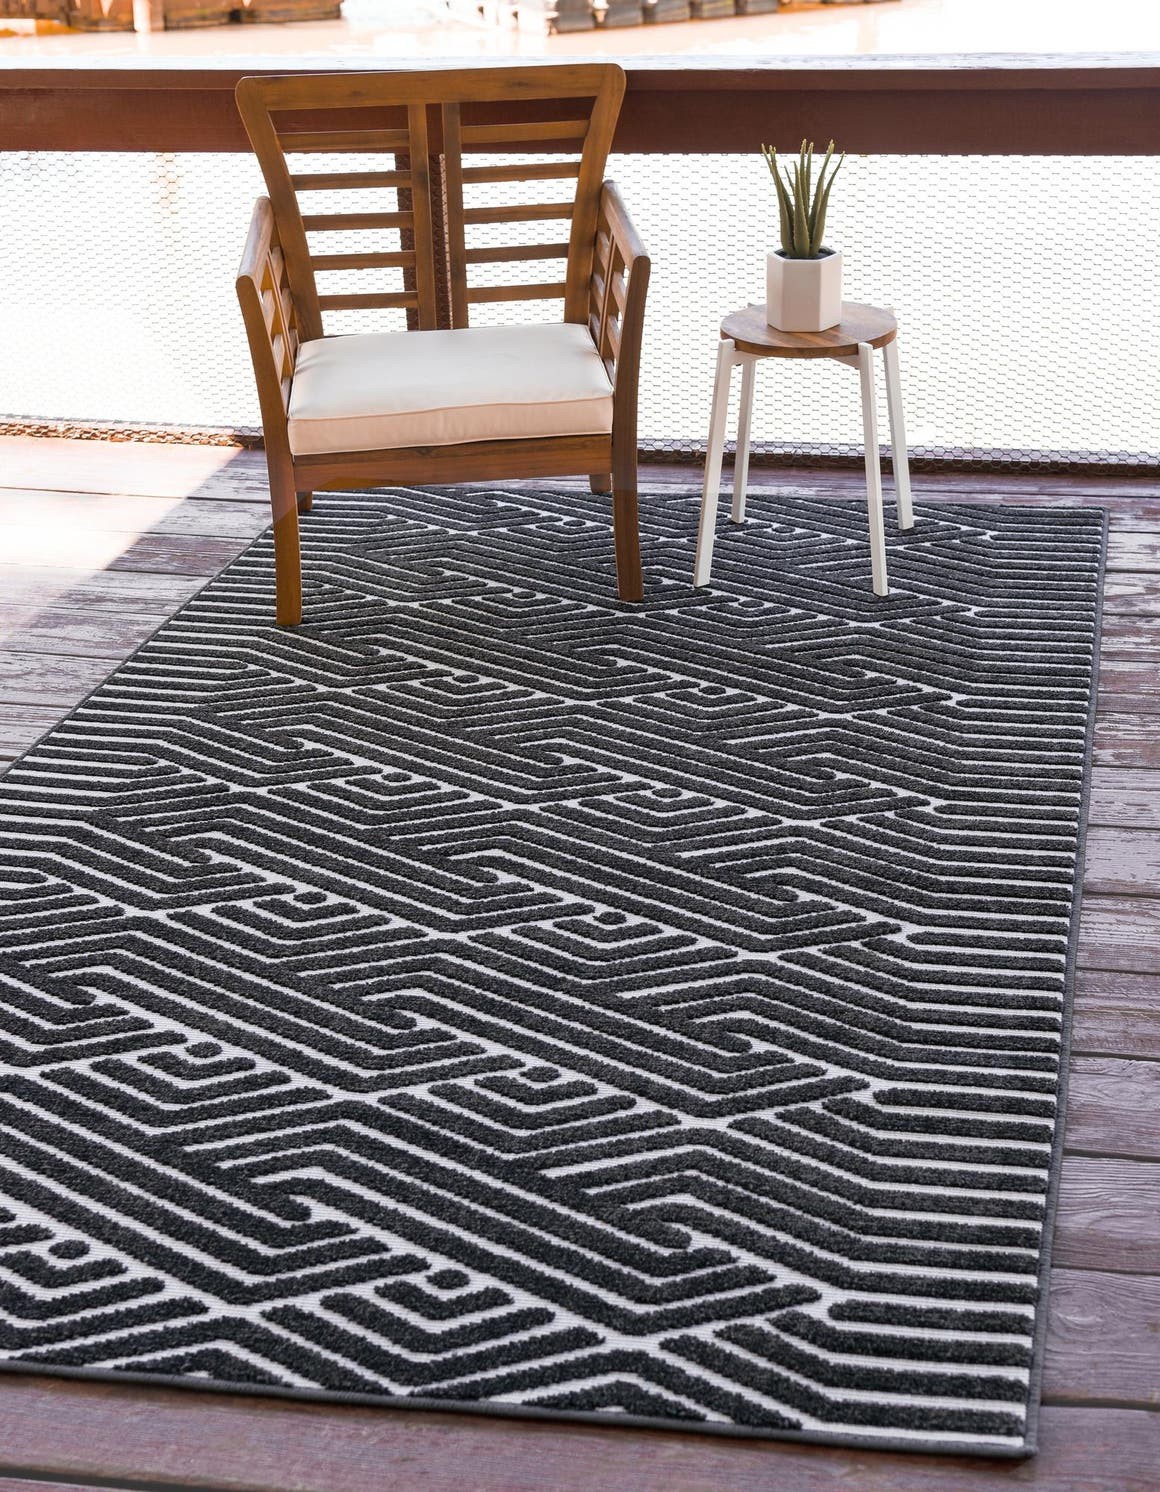 1' 8 x 1' 8 Sabrina Soto Outdoor Sample Rug main image